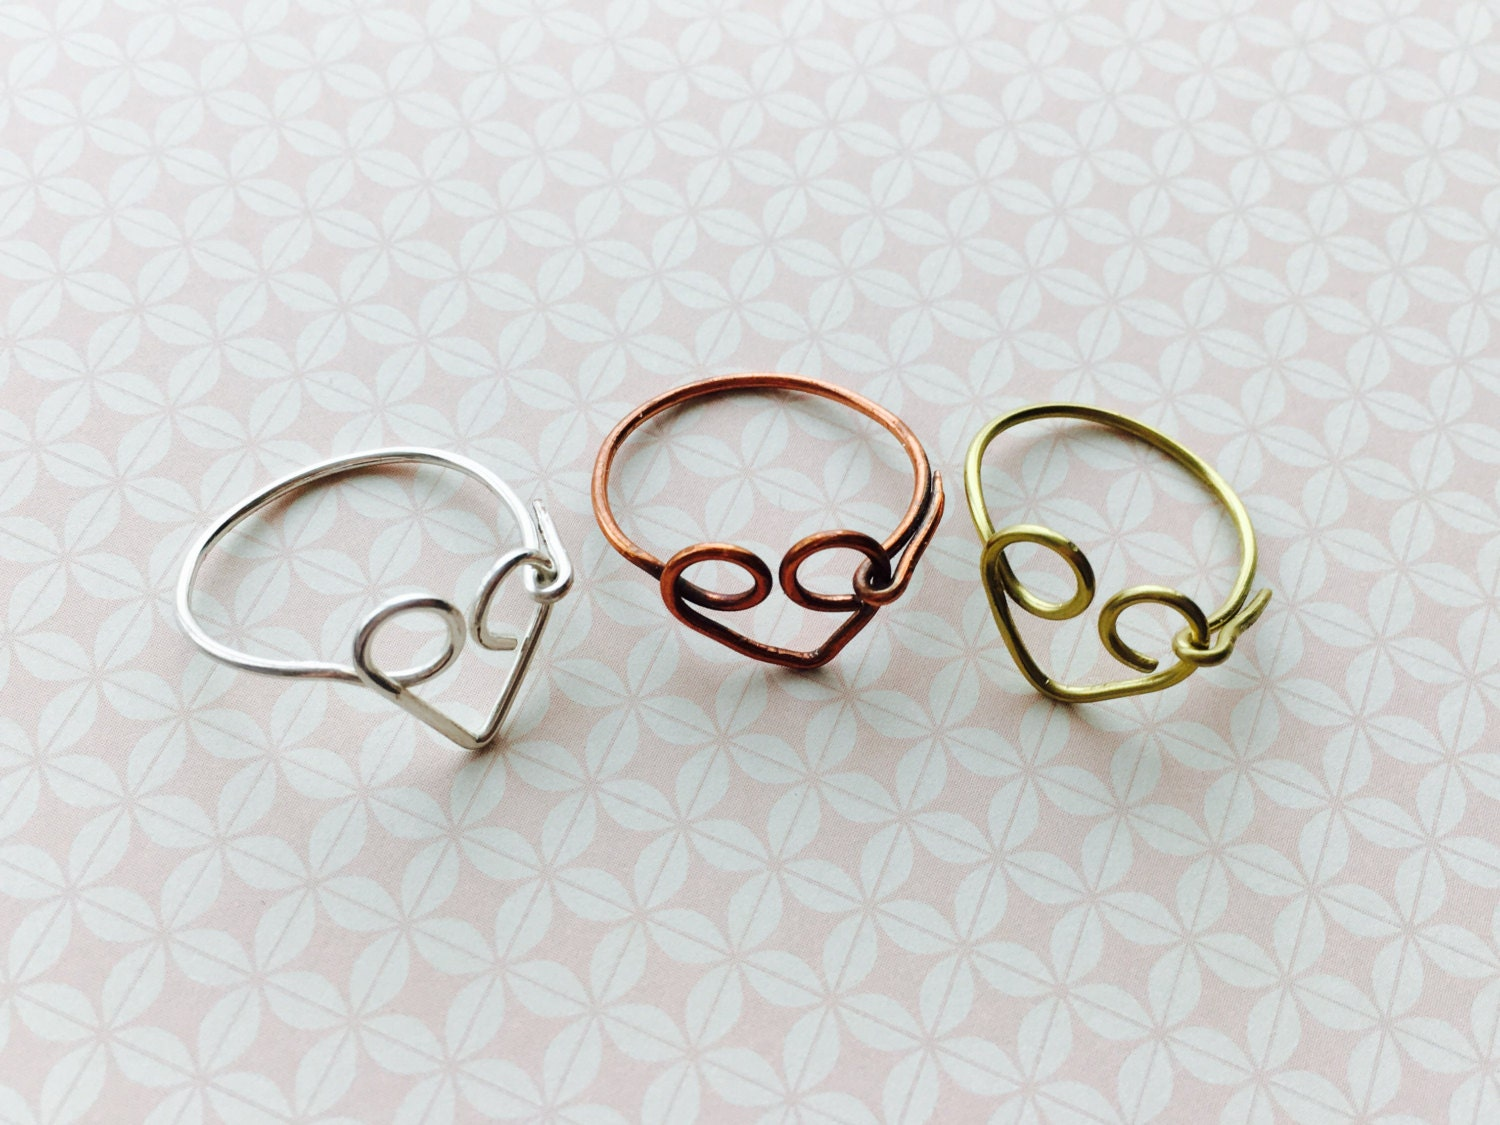 Heart Ring  Silver Ring  Gold Ring  Copper Ring  Open Heart Ring  Love  Promise Ring  Birthday Gift  Best Friend  Bridesmaid Gift